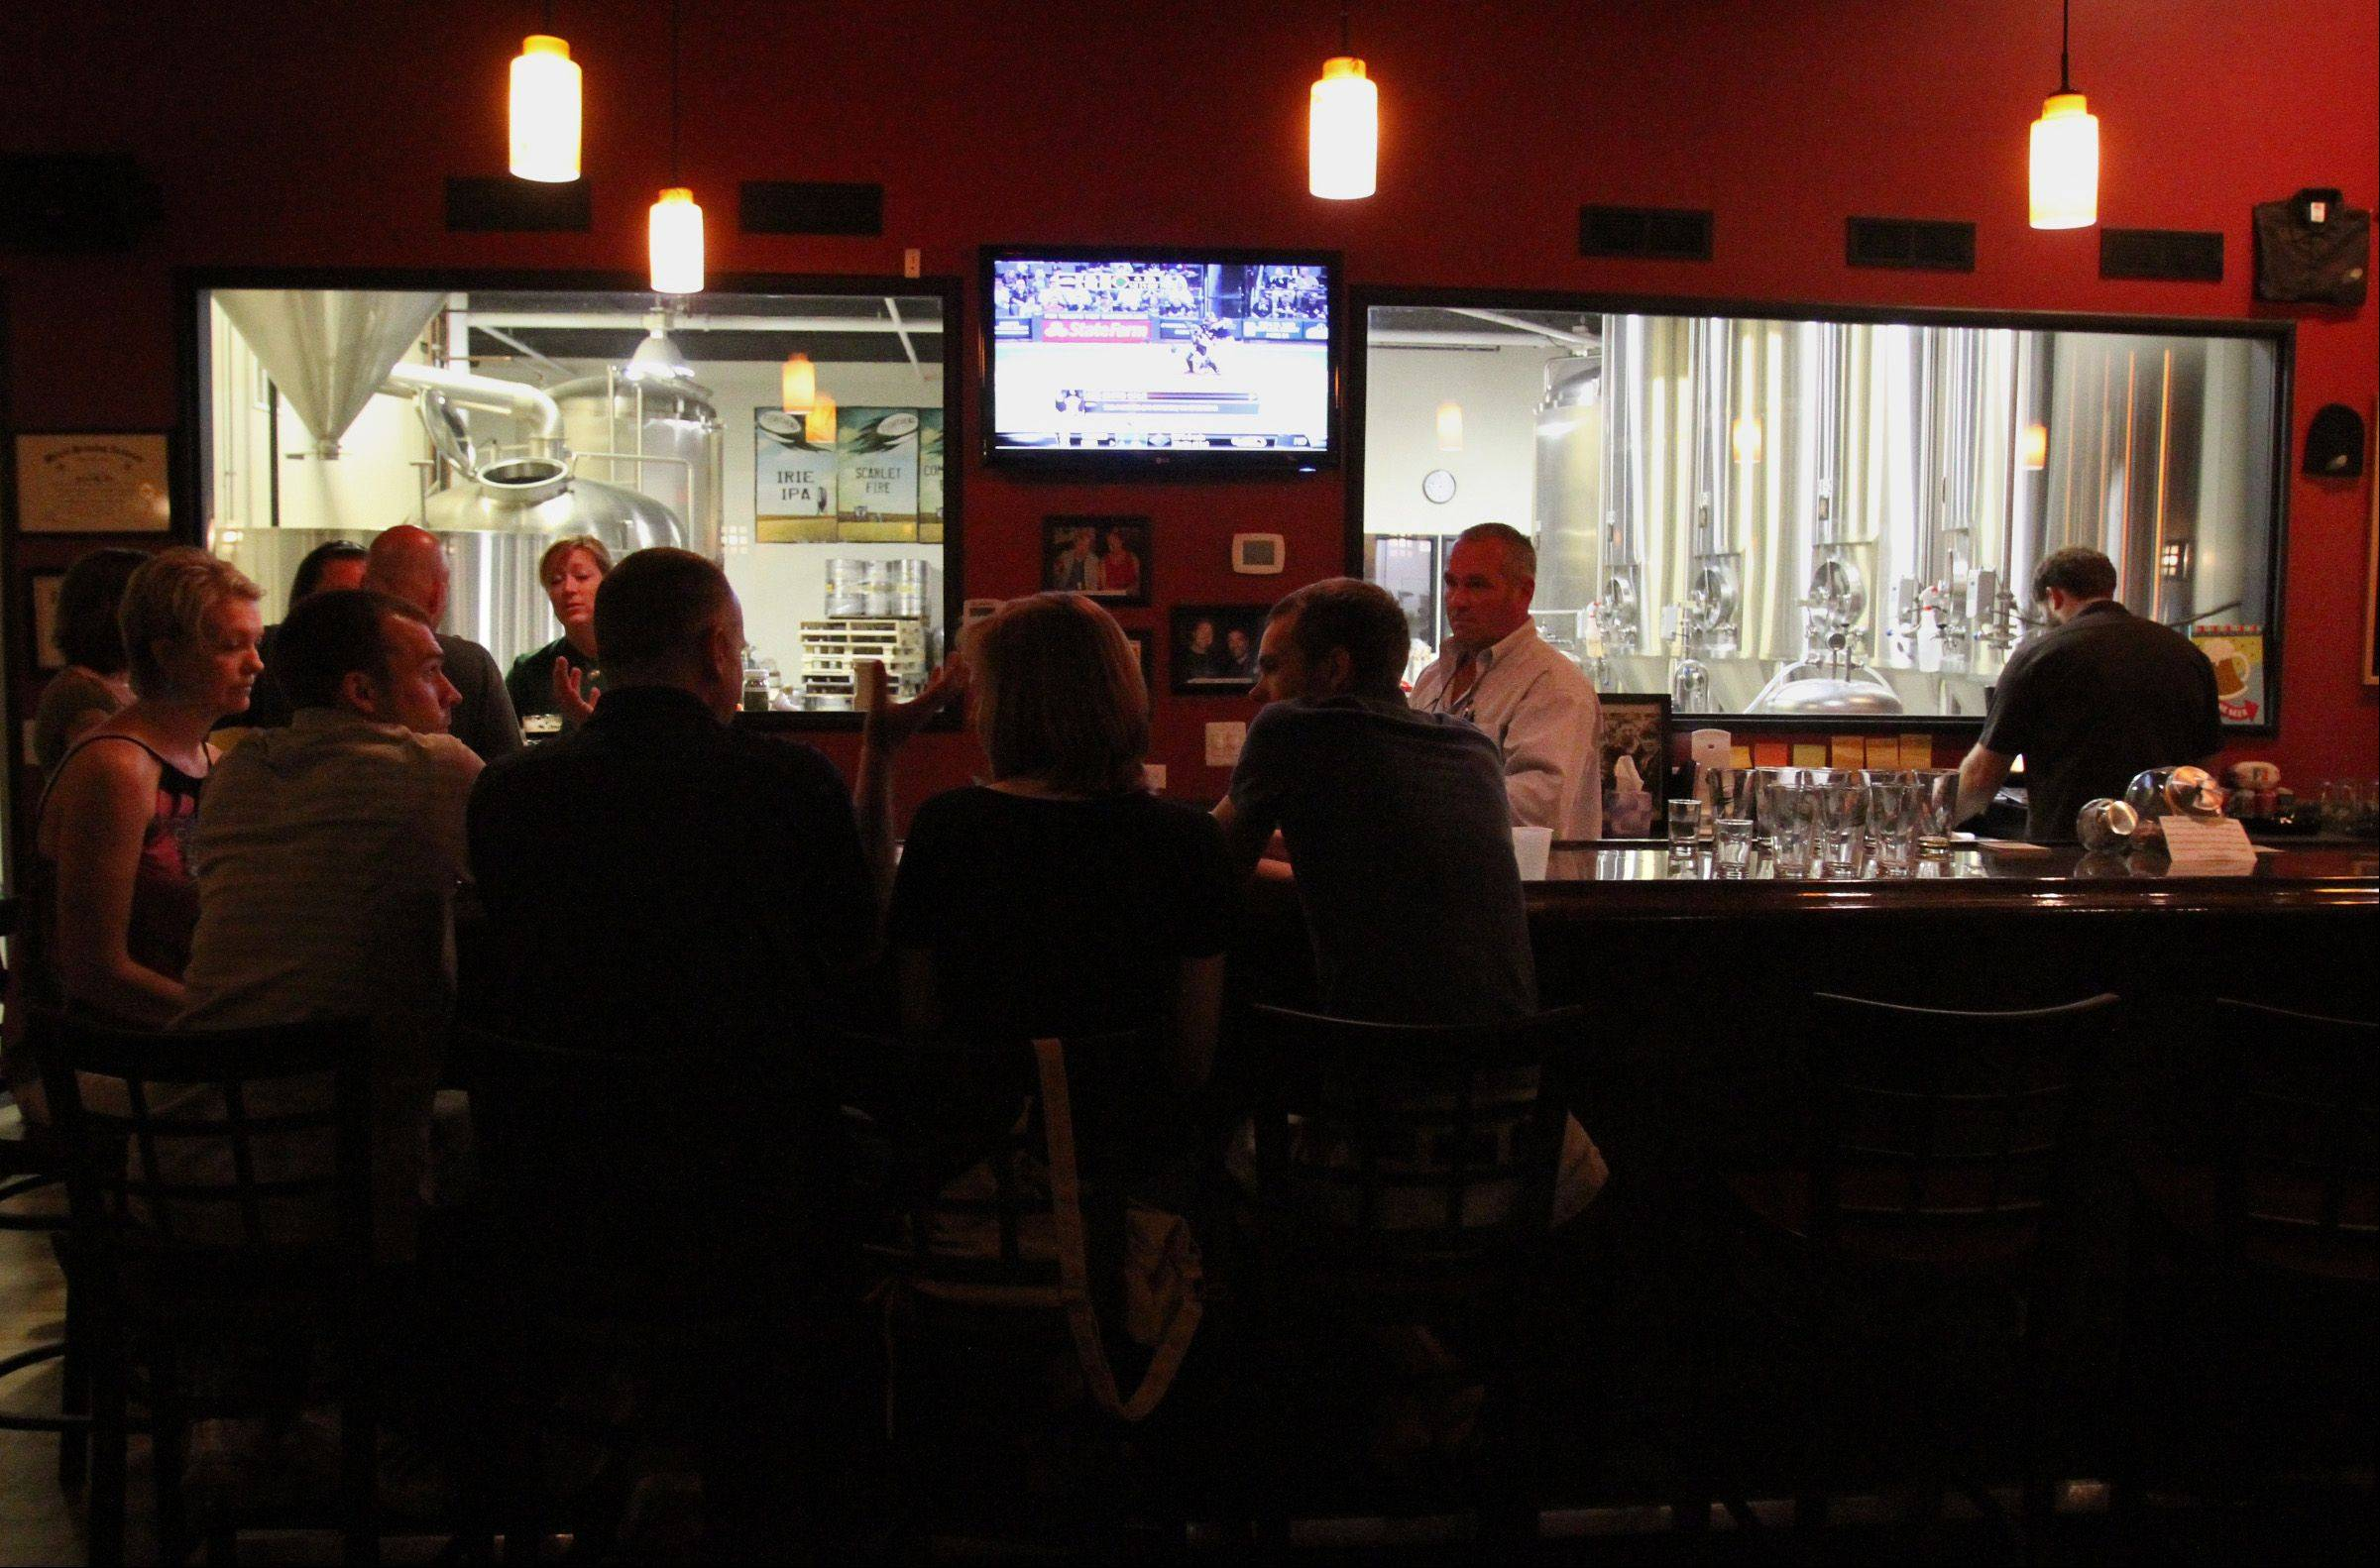 Tighthead Brewing Company's tap room view allows customers to view the brewery from the bar.